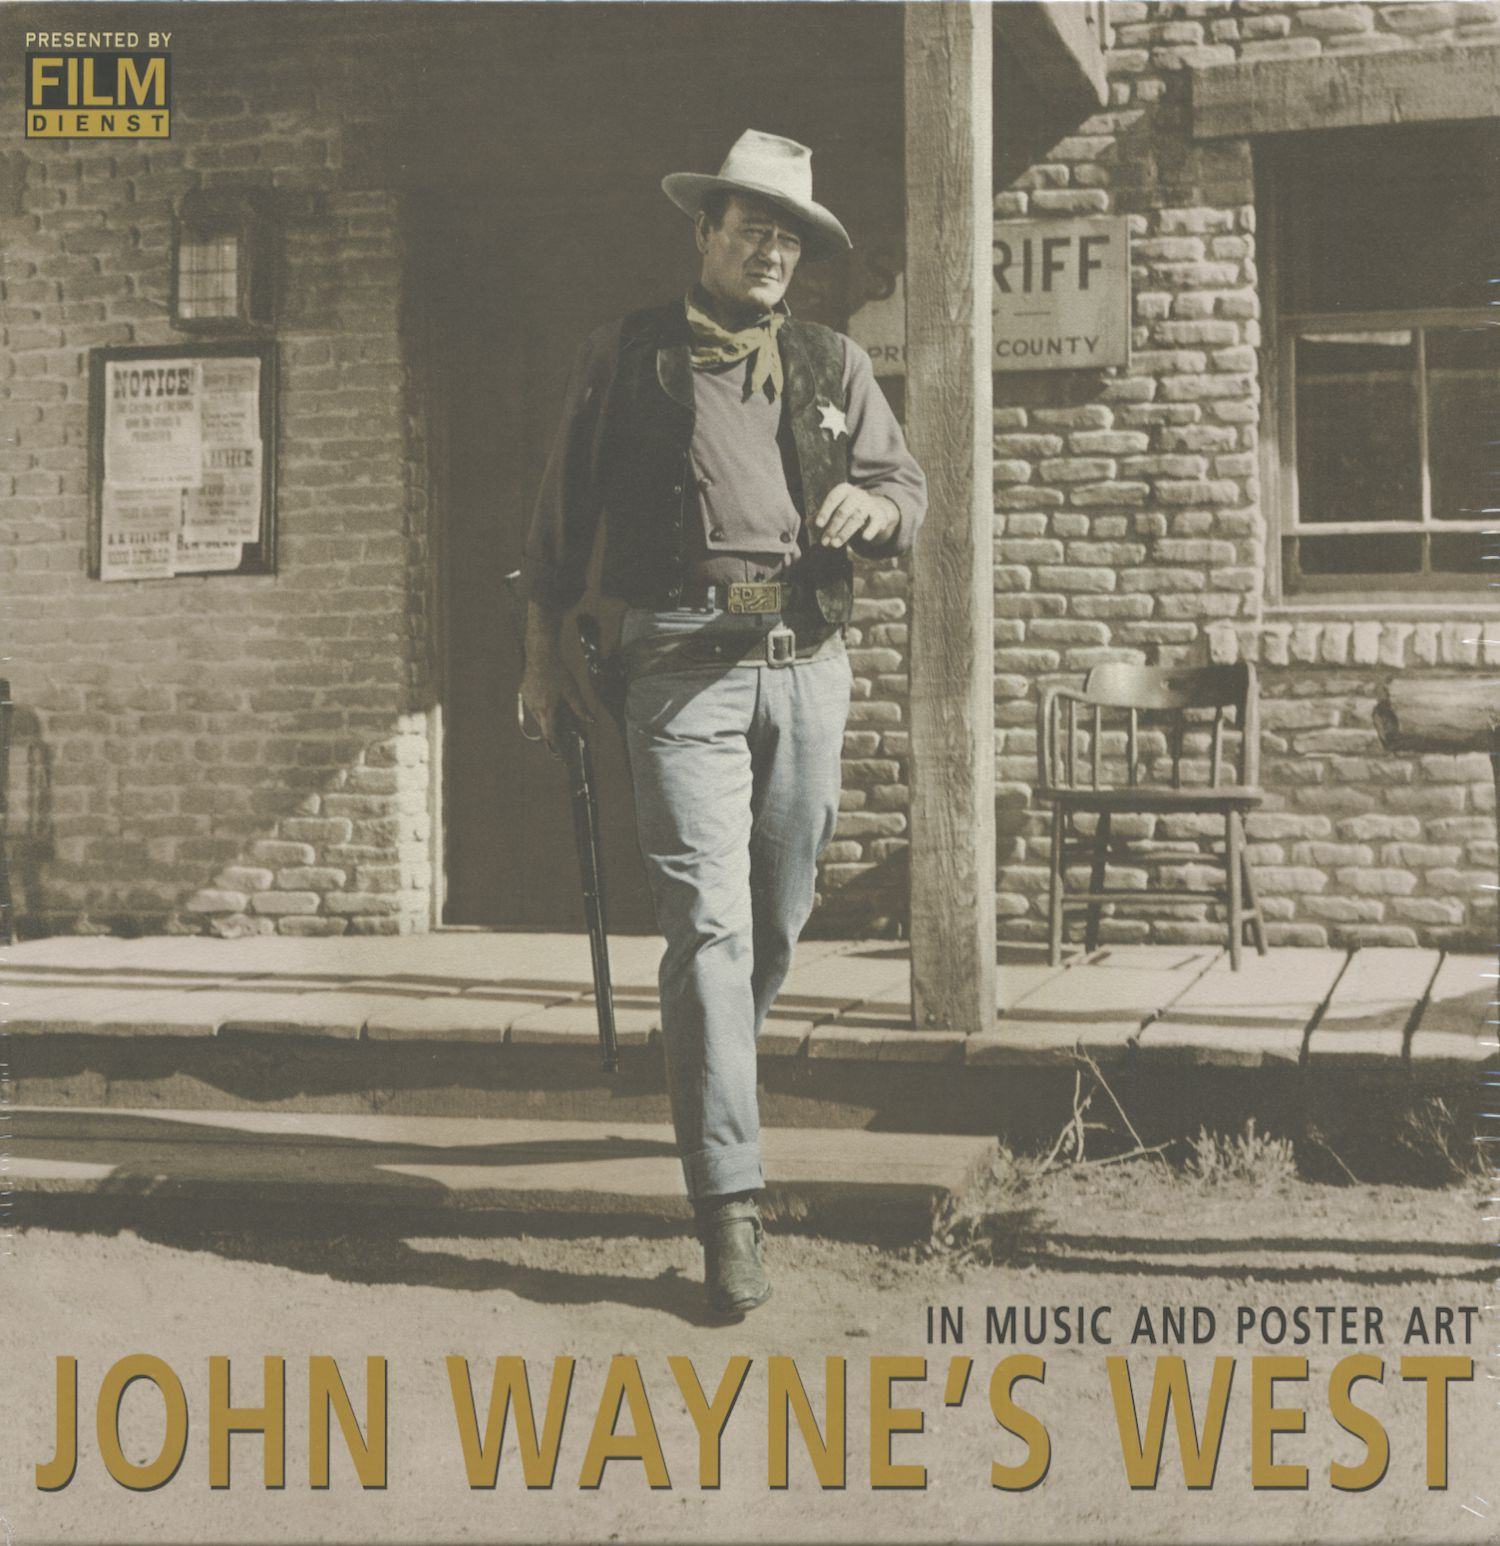 e55ffb5e02d John Wayne Box set  John Wayne s West - In Music And Poster Art (10 ...